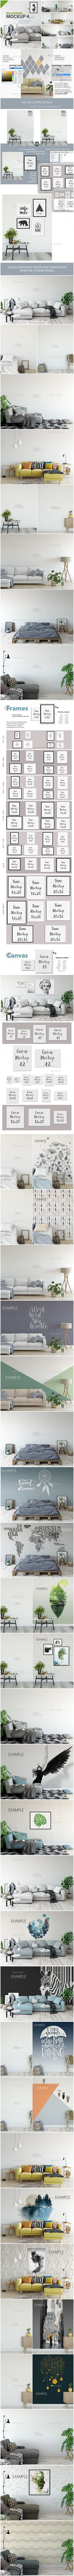 53 best Mockups | Posters * Prints * Frames images on Pinterest ...